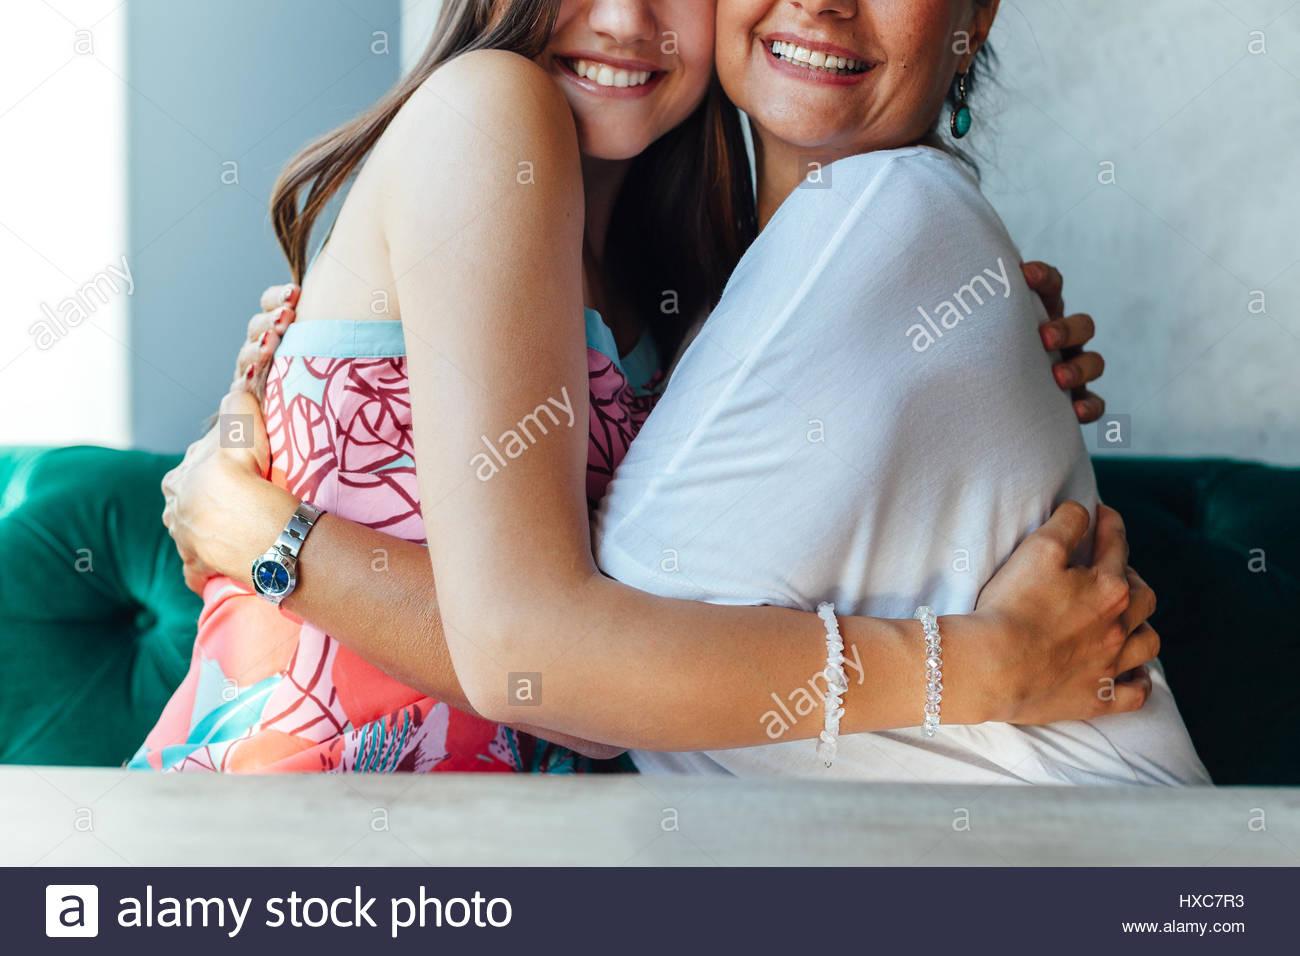 Embrace of mother and daughter in closeup - Stock Image